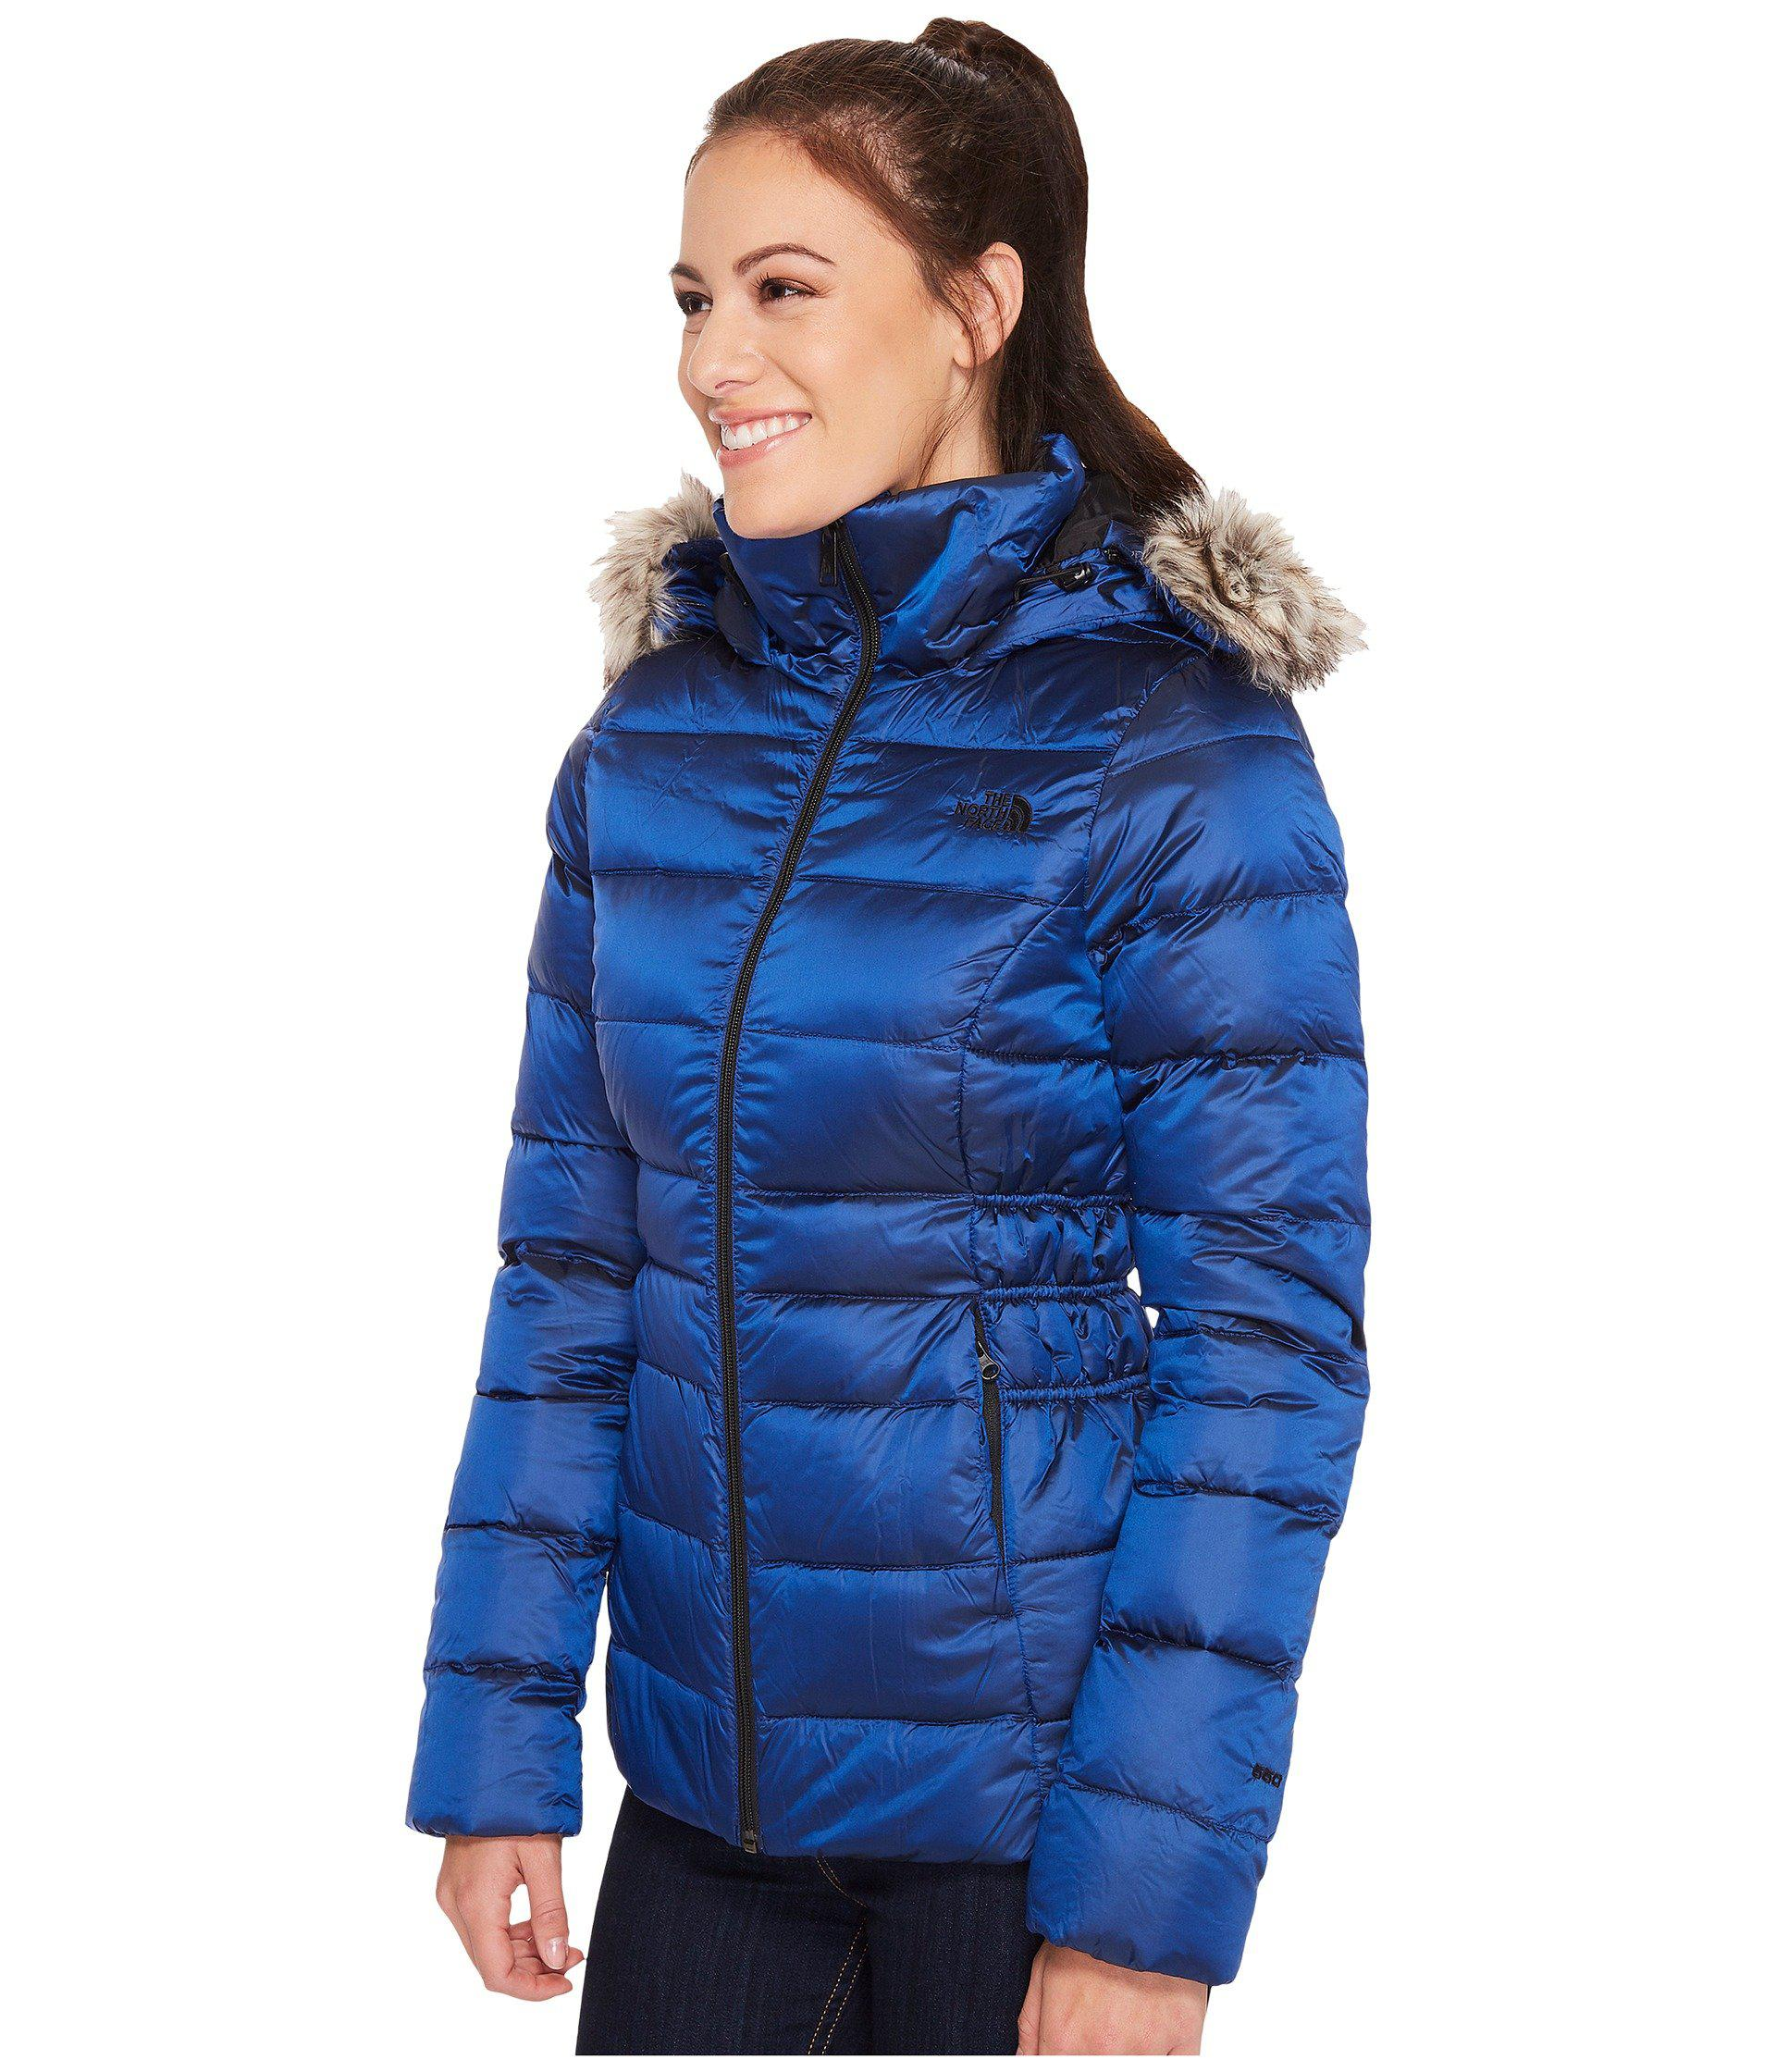 ... order lyst the north face gotham jacket ii in blue save  22.360248447204967 badbe c3302 ... 1d2f48c47